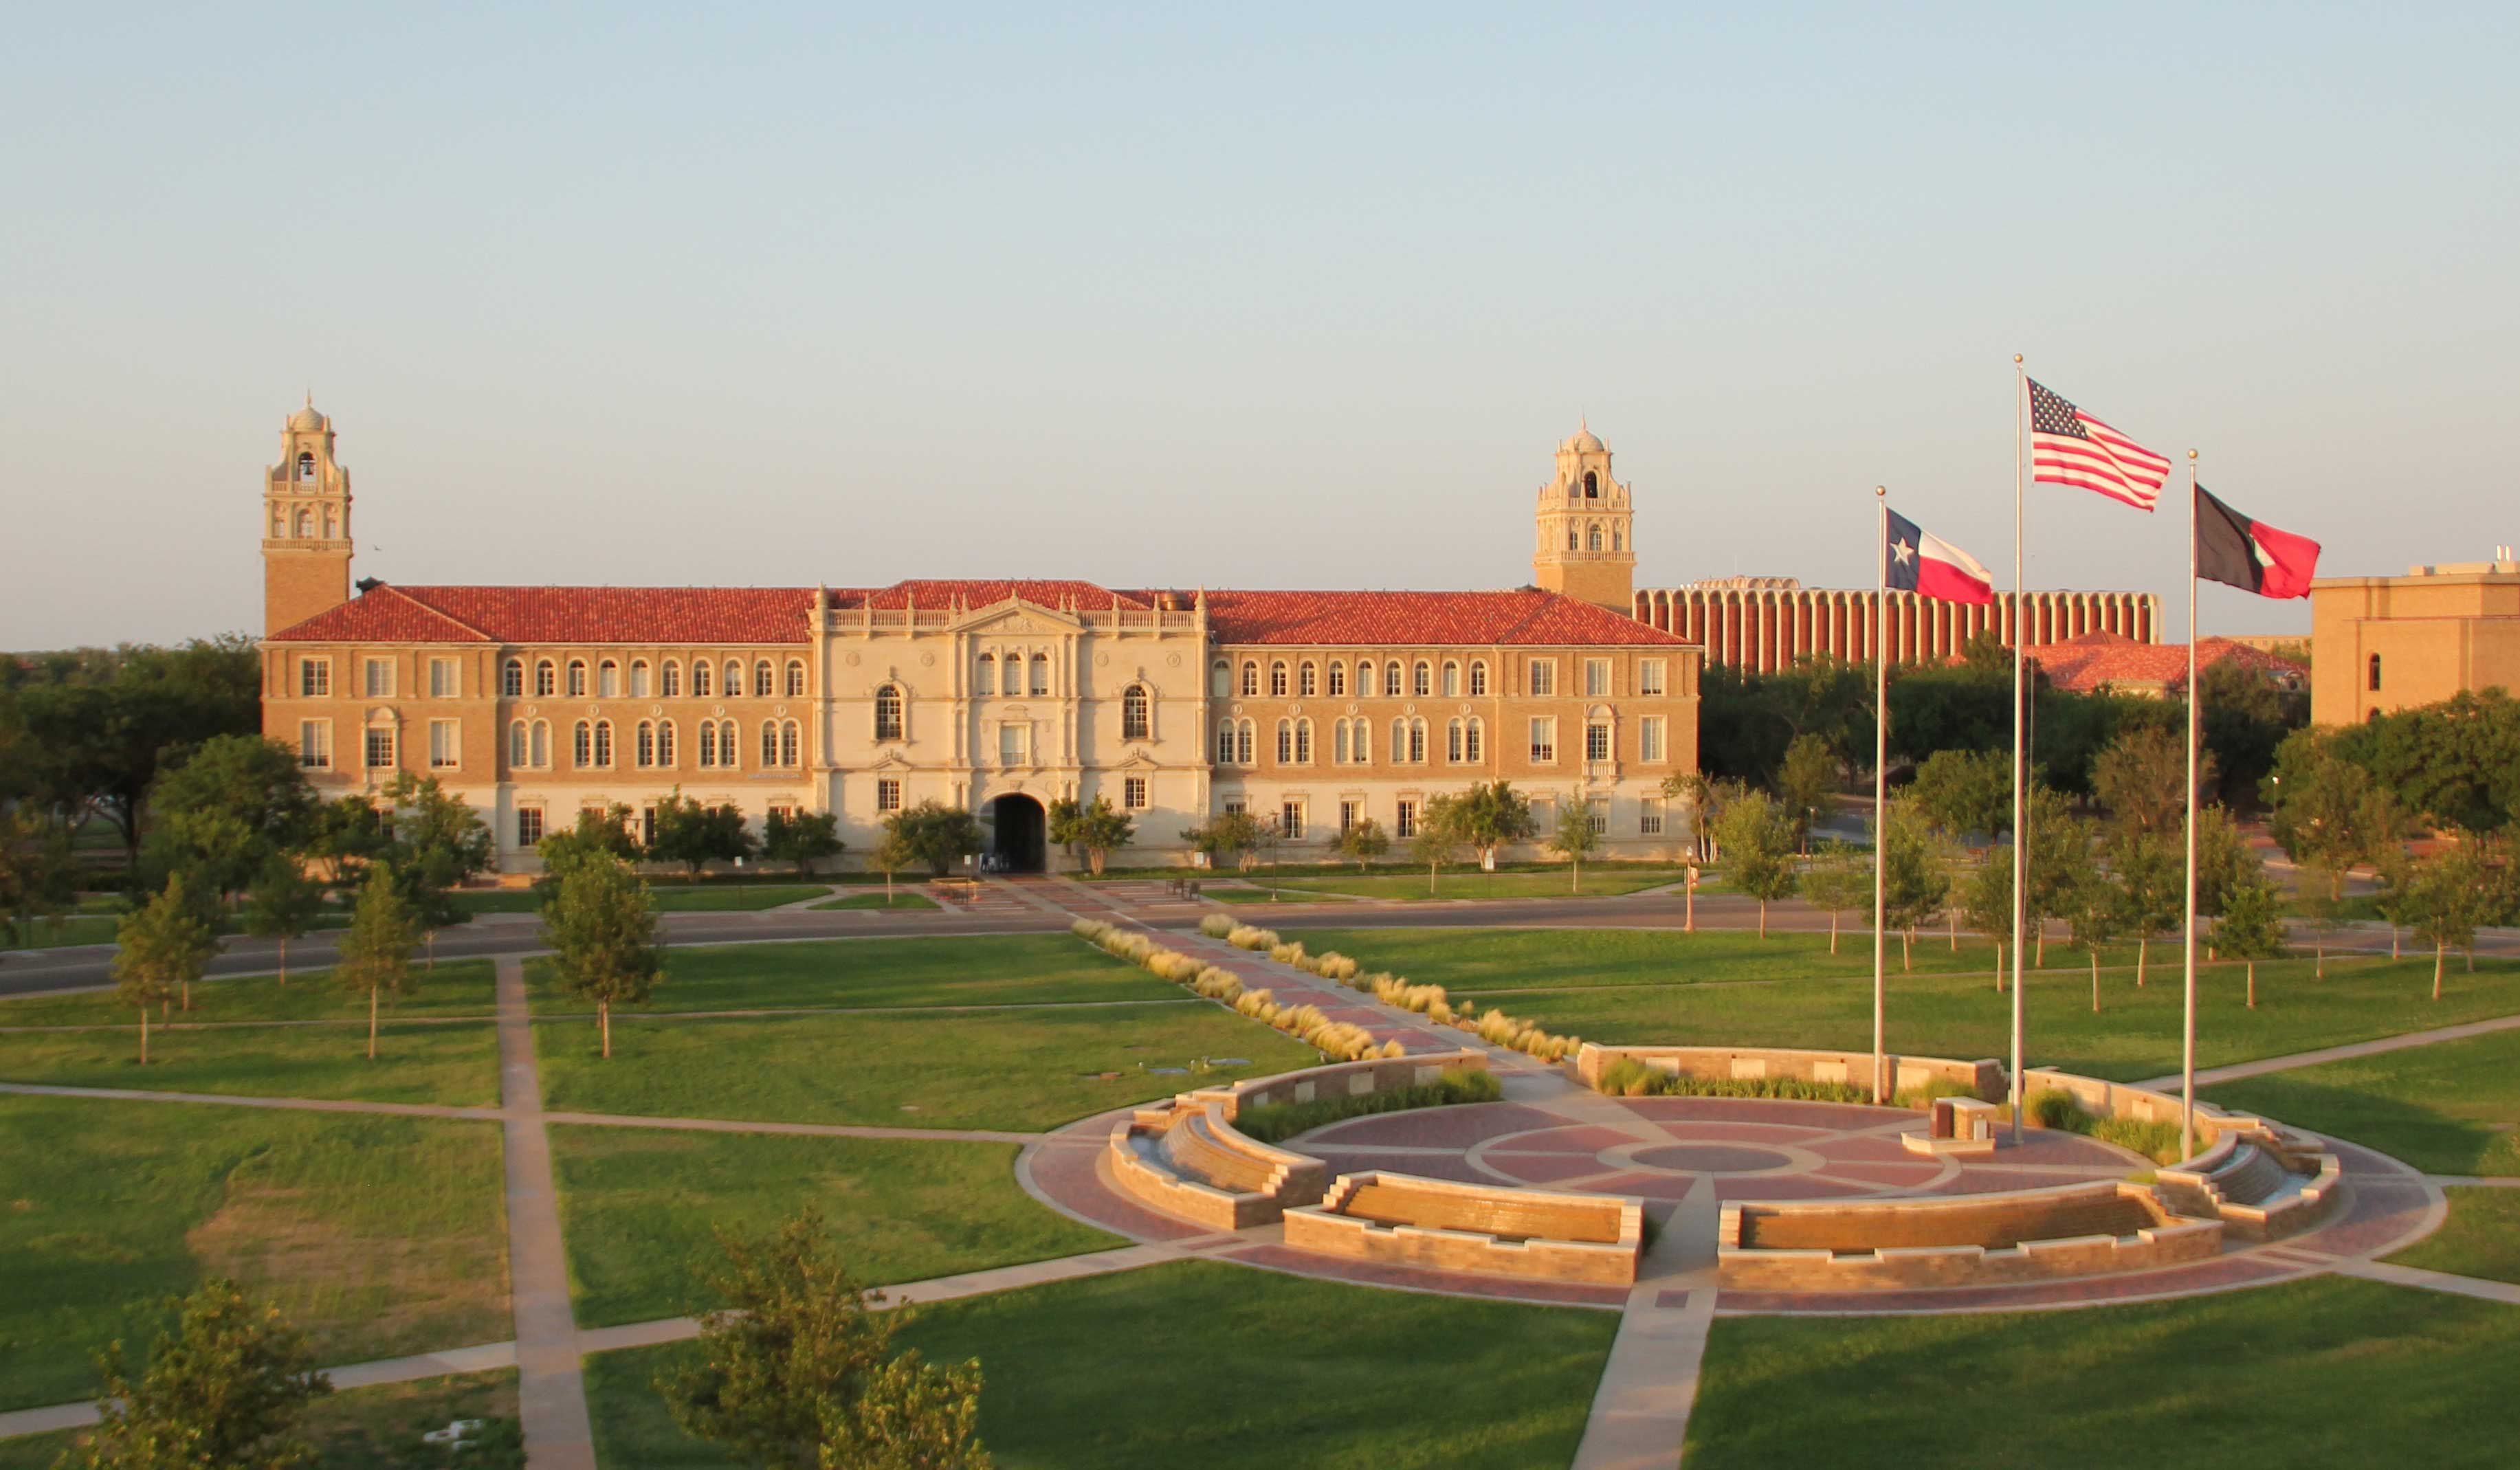 Pin By Wingate Lubbock On Lubbock Tx With Images Texas Tech University Best Romantic Getaways Texas Tech